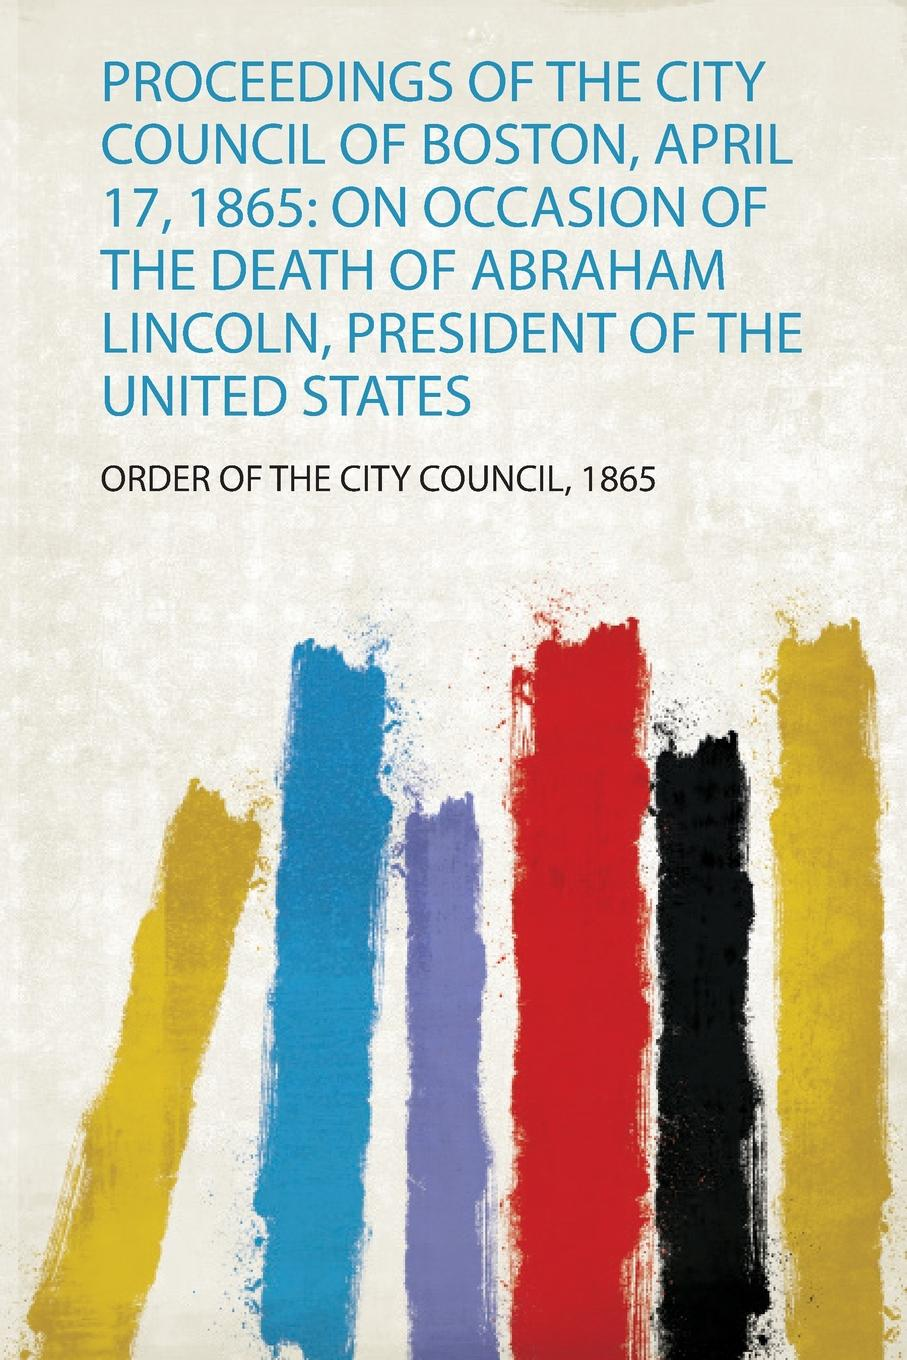 Proceedings of the City Council of Boston, April 17, 1865. on Occasion of the Death of Abraham Lincoln, President of the United States proceedings of the city council of boston april 17 1865 on occasion of the death of abraham lincoln president of the united states volume c 2